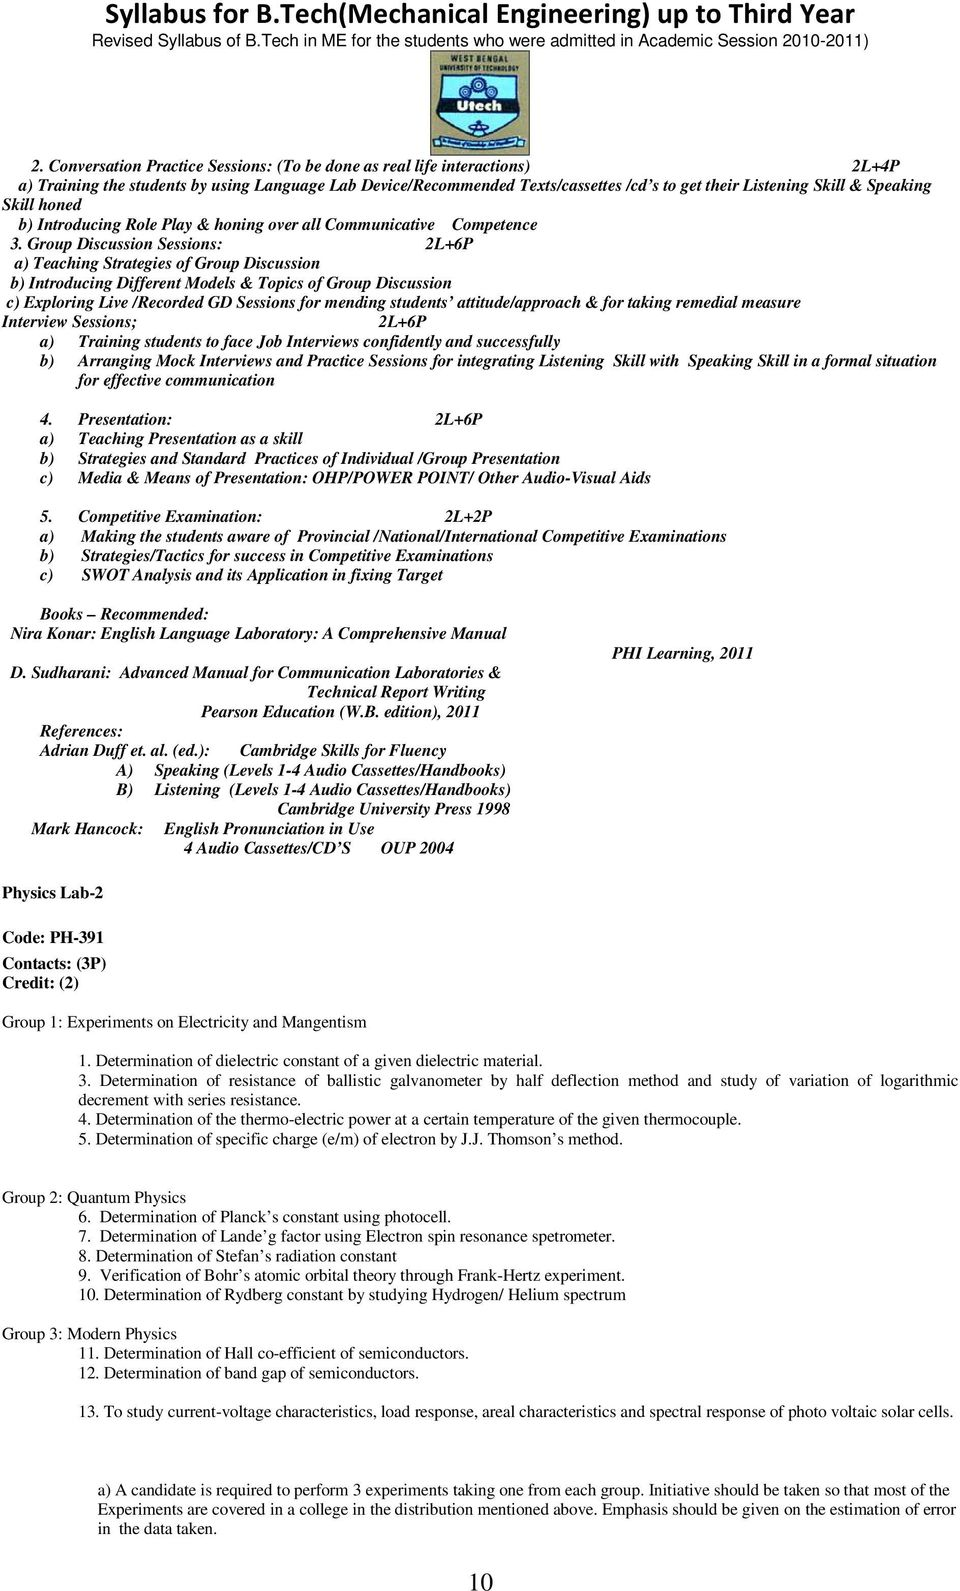 Syllabus for B Tech(Mechanical Engineering) up to Third Year